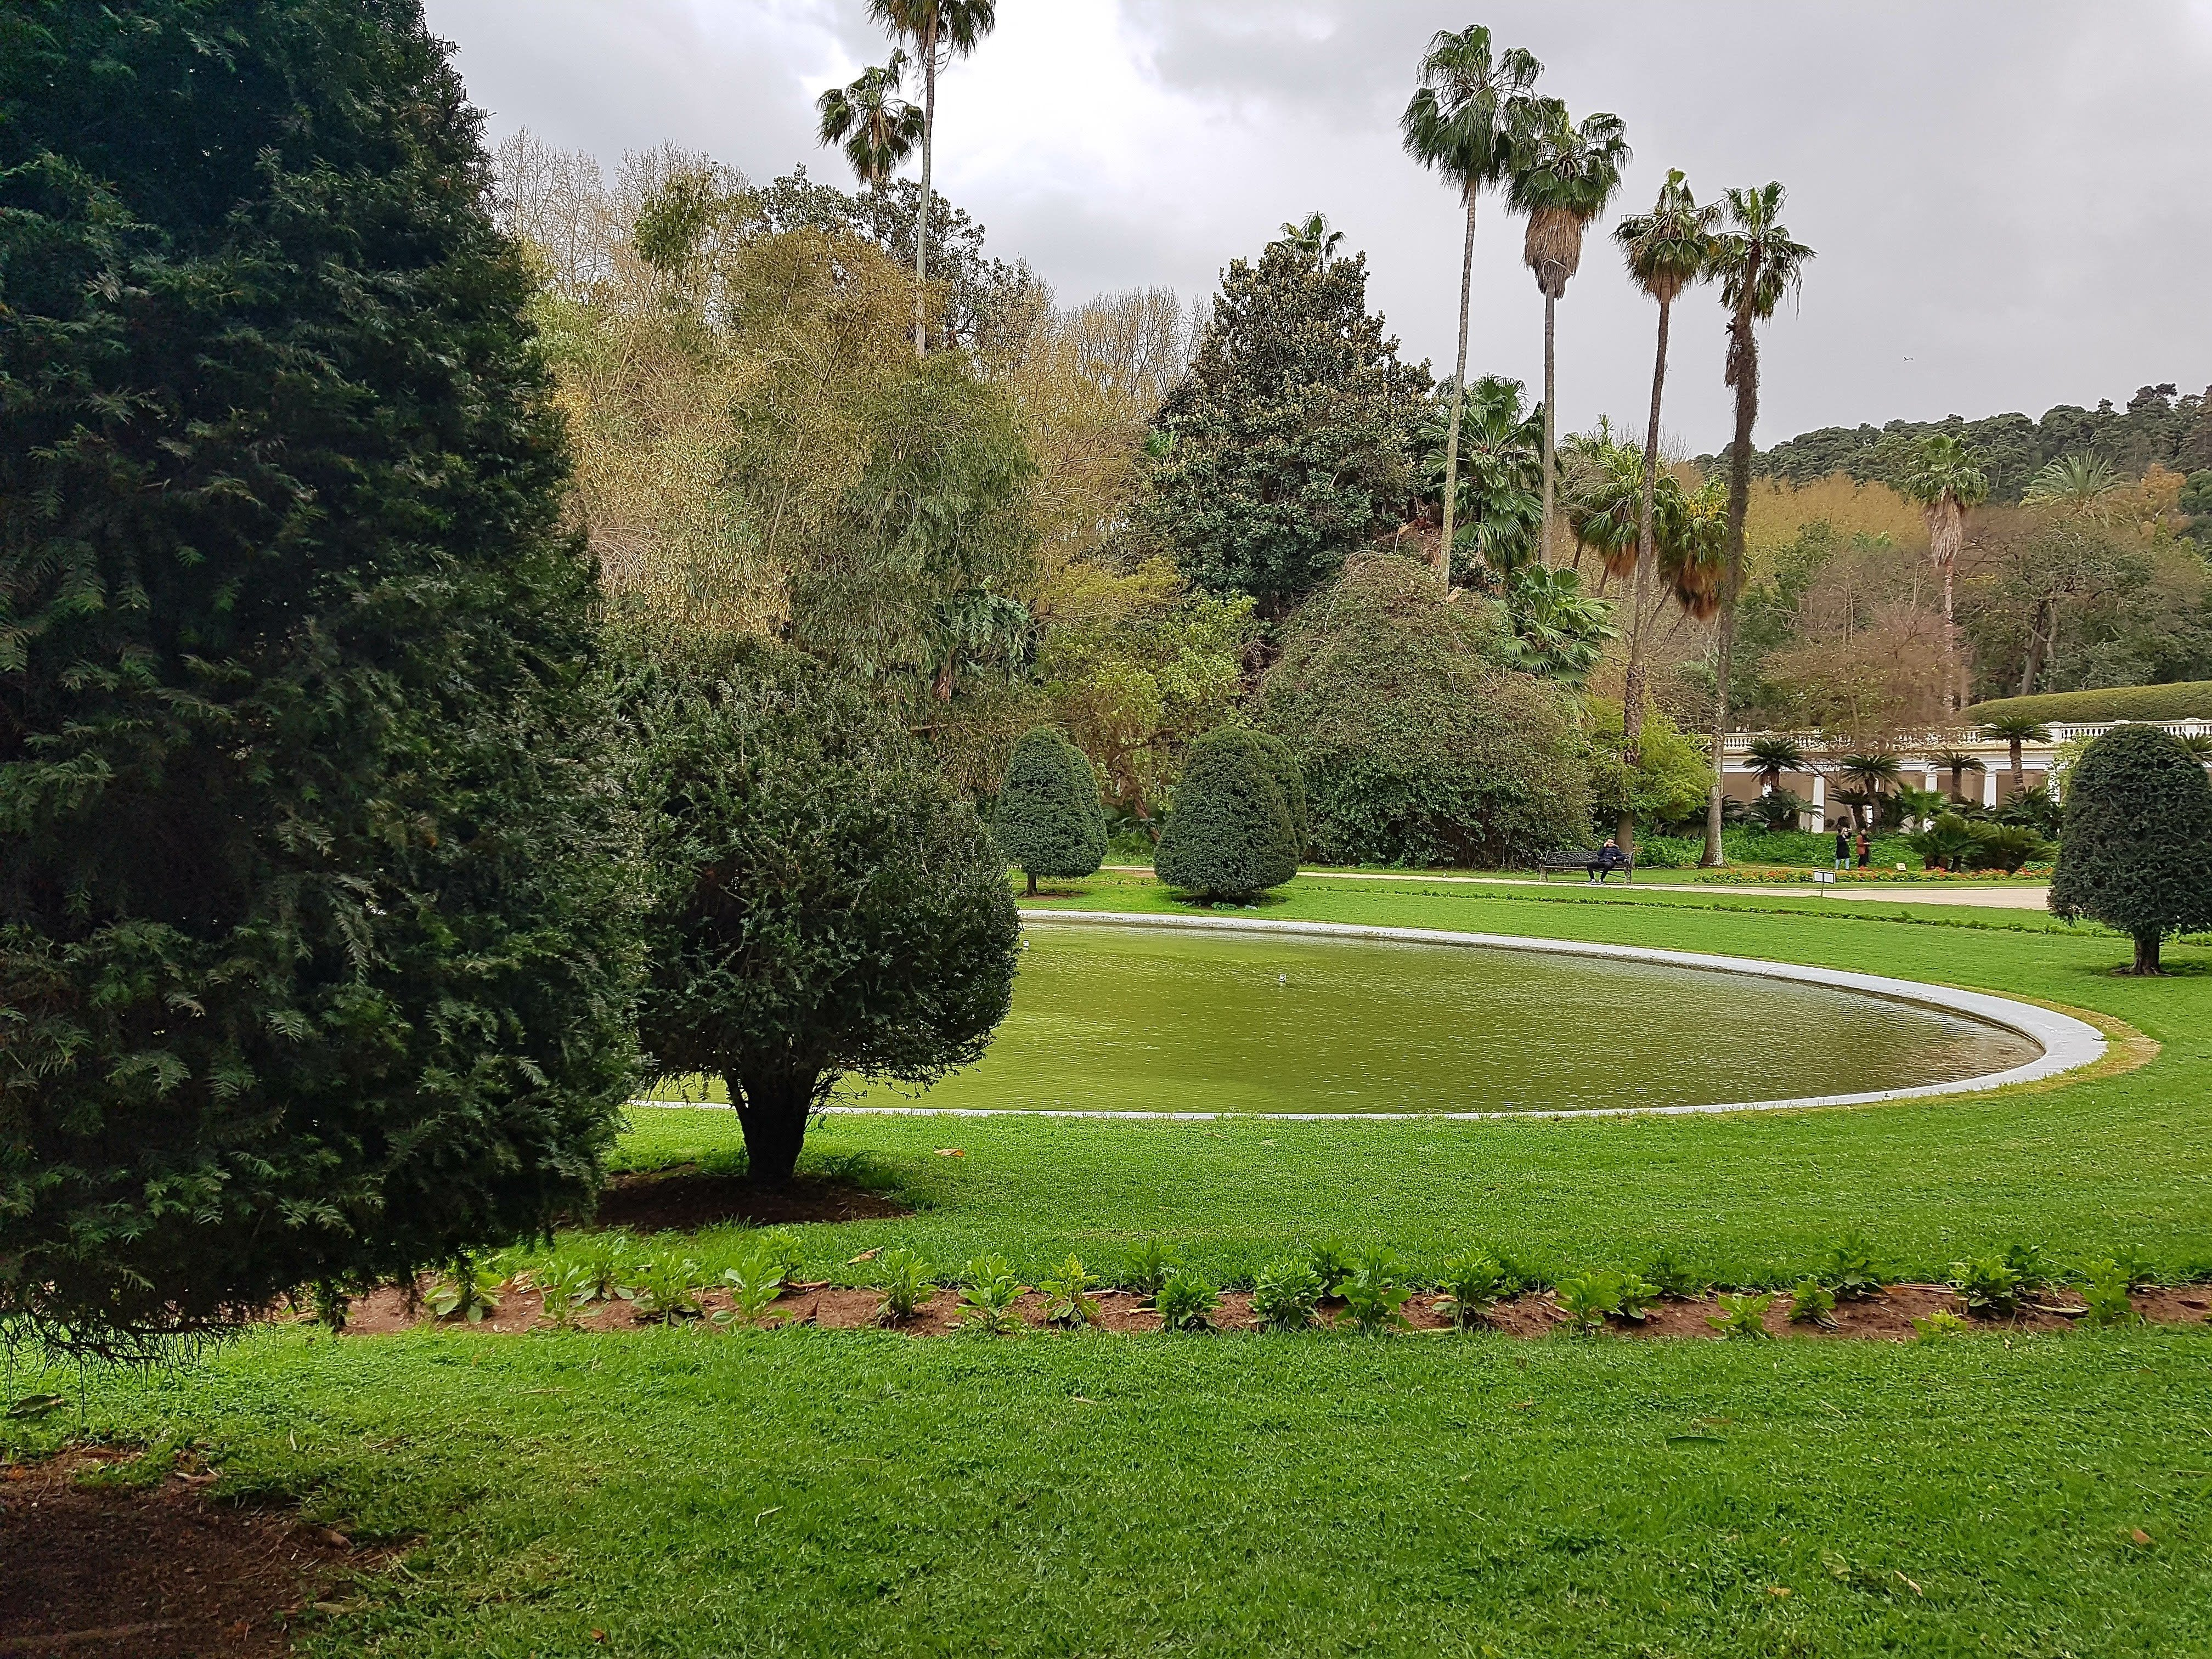 Jardin d'Essai du Hamma things to see and do in Algeria